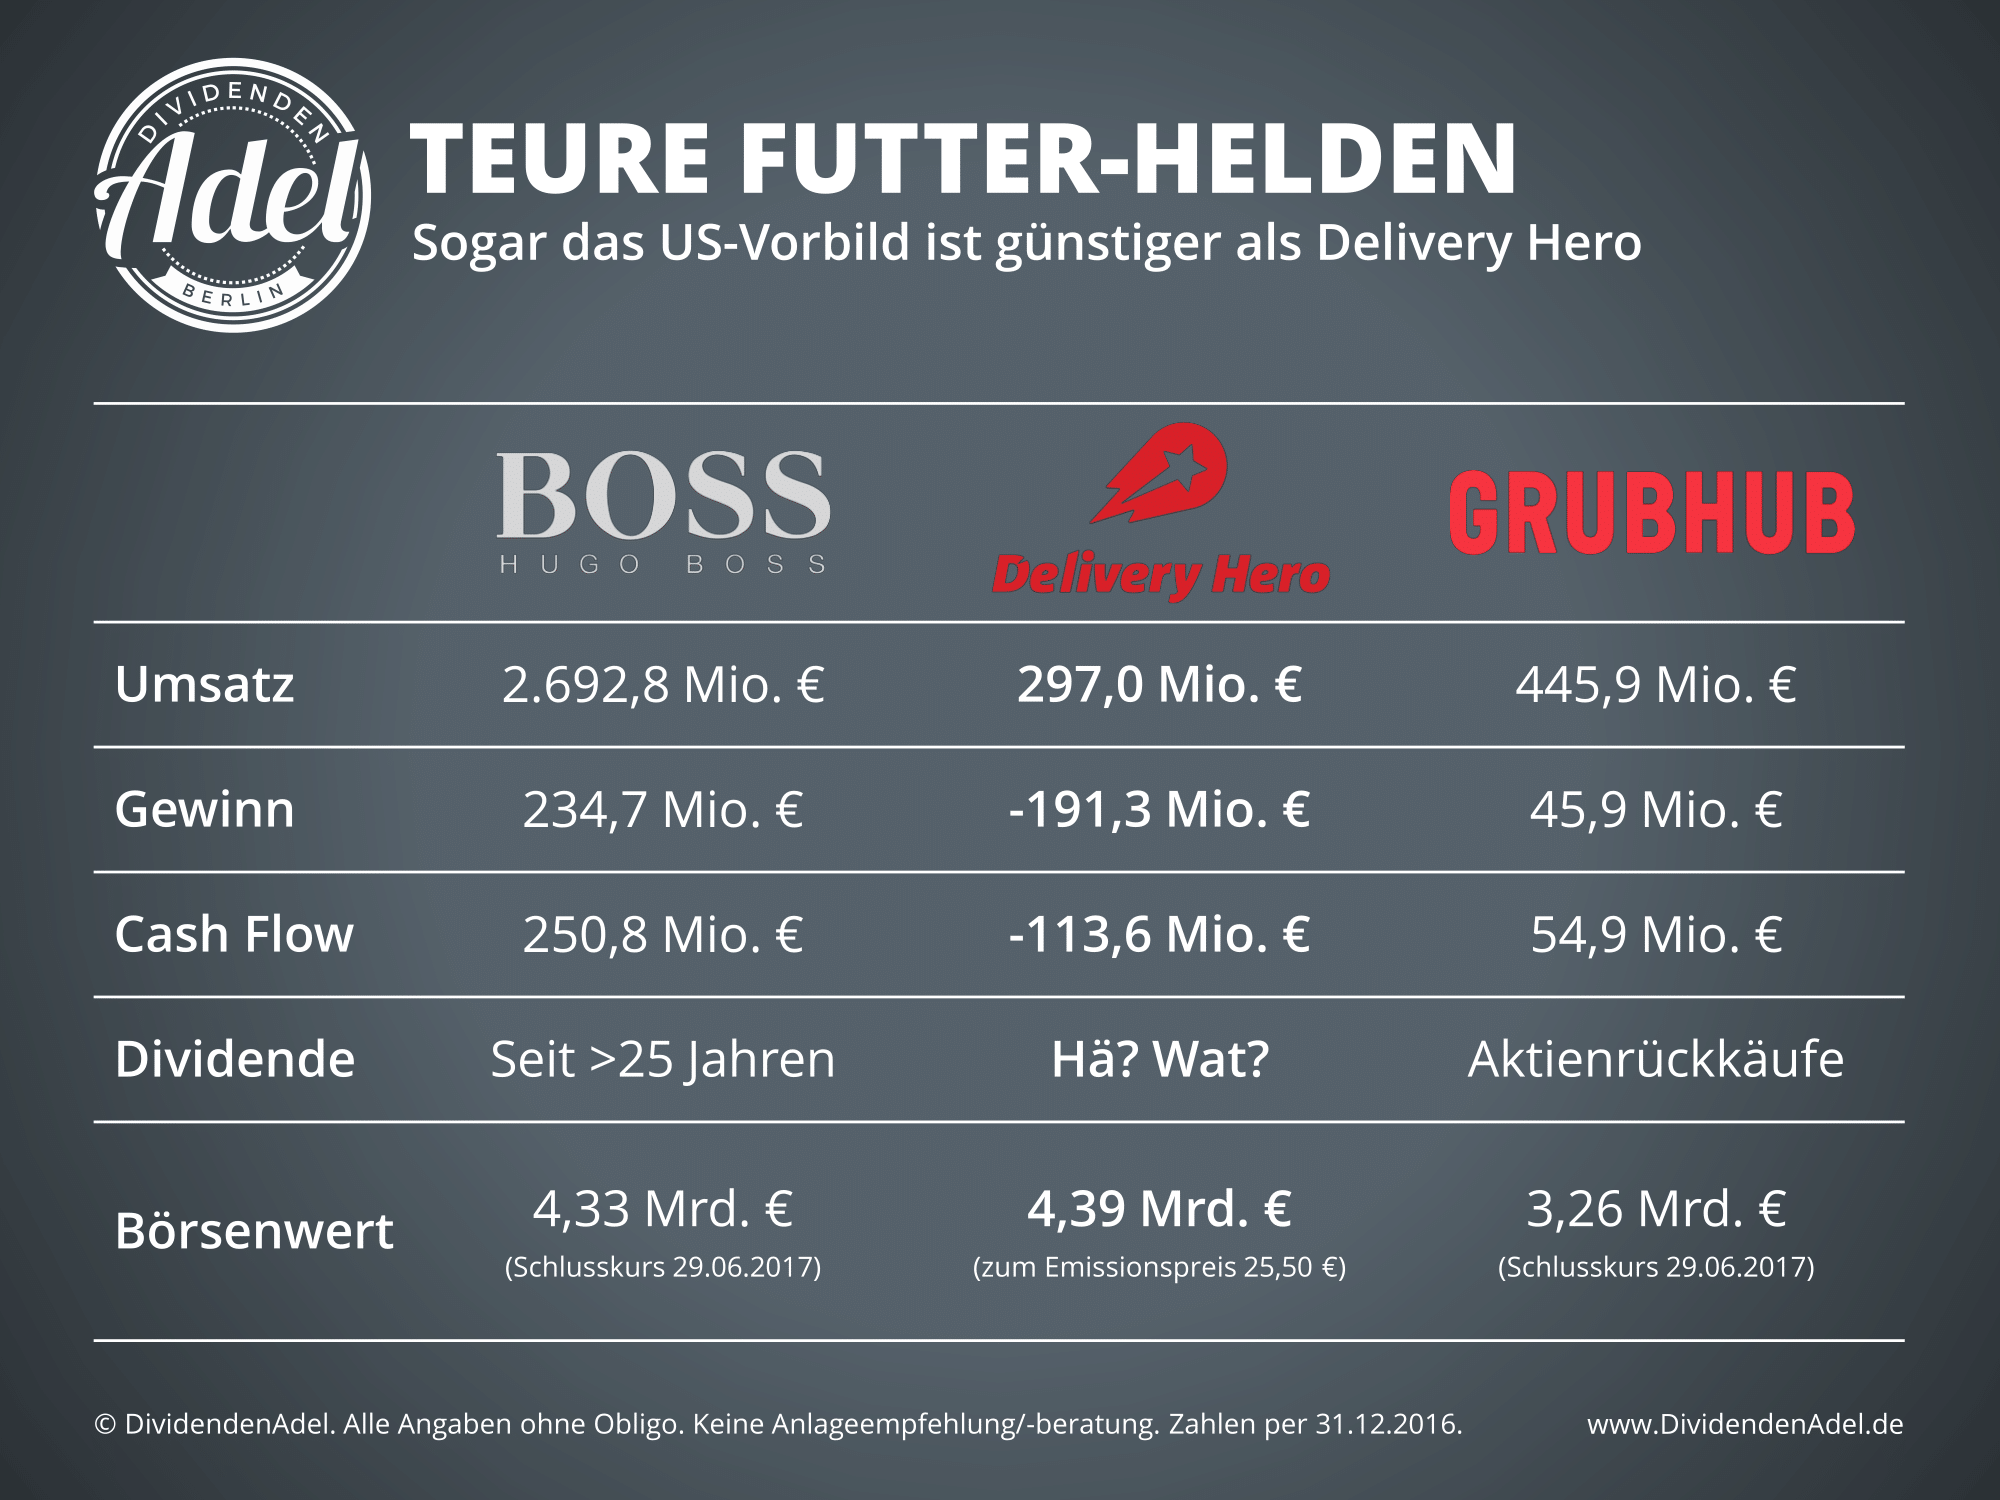 Delivery Hero Grubhub Boss-1